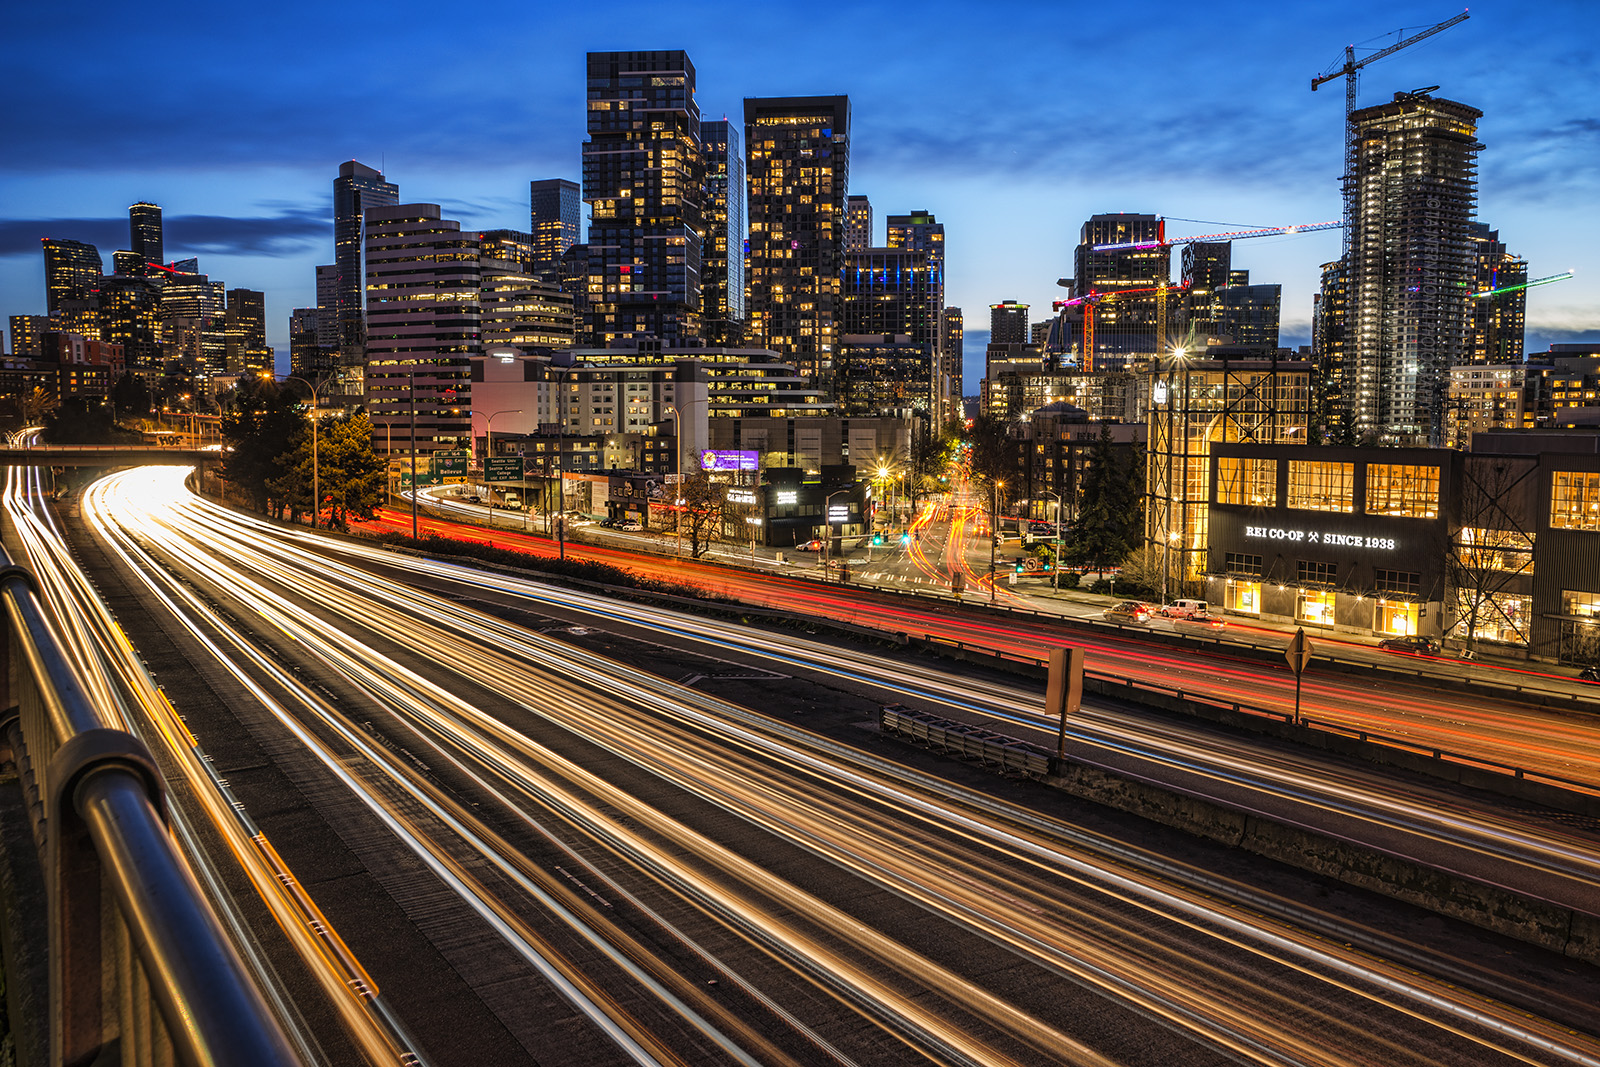 Interstate 5 and skyline of downtown Seattle during the evening blue hour. (December 26, 2020).